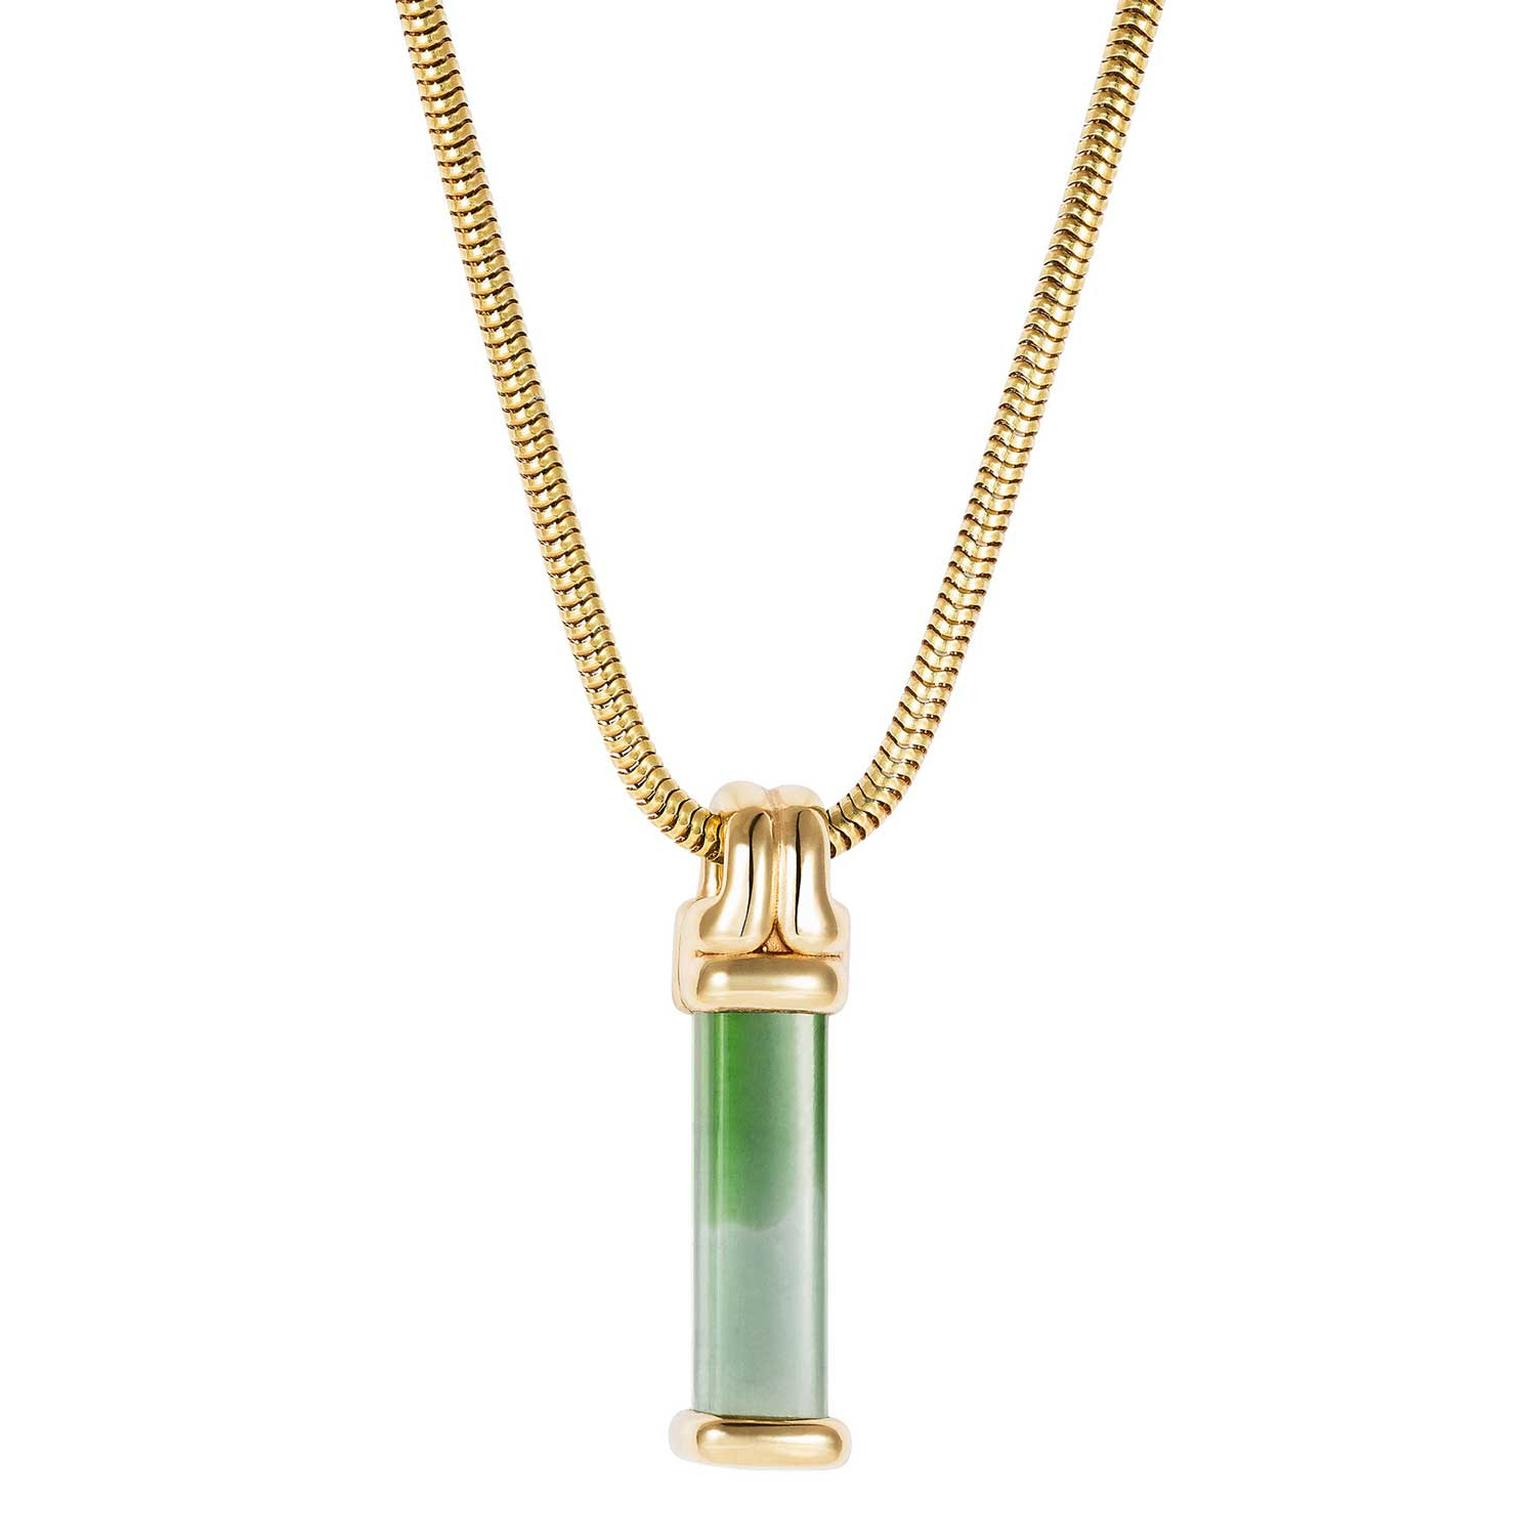 Fernando Jorge Parallel tourmaline Bar pendant